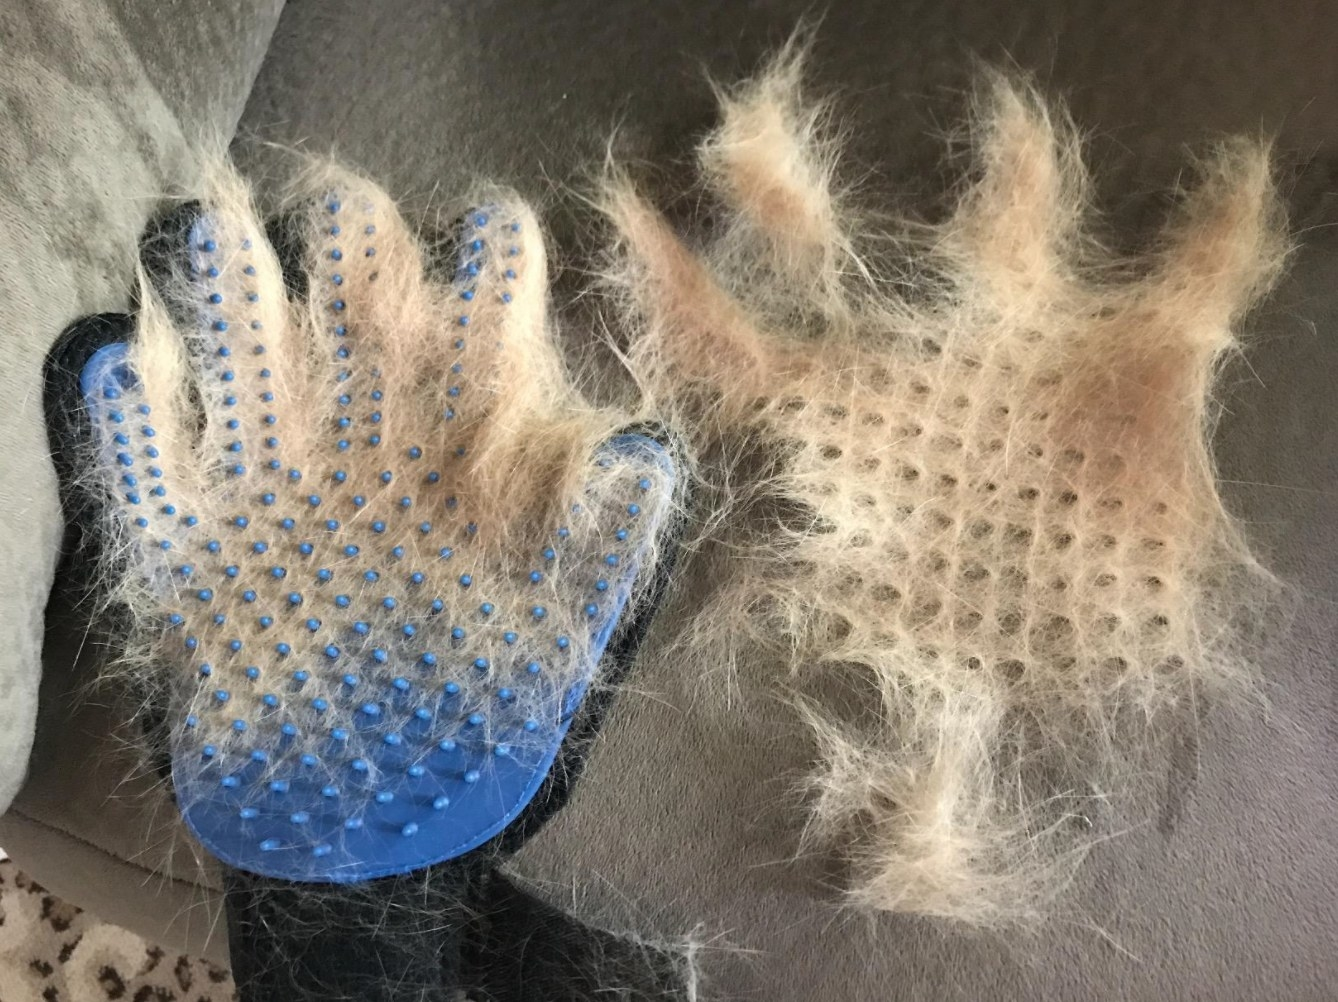 The reviewer's image of the de-shedding mitts with the cat hair they collected